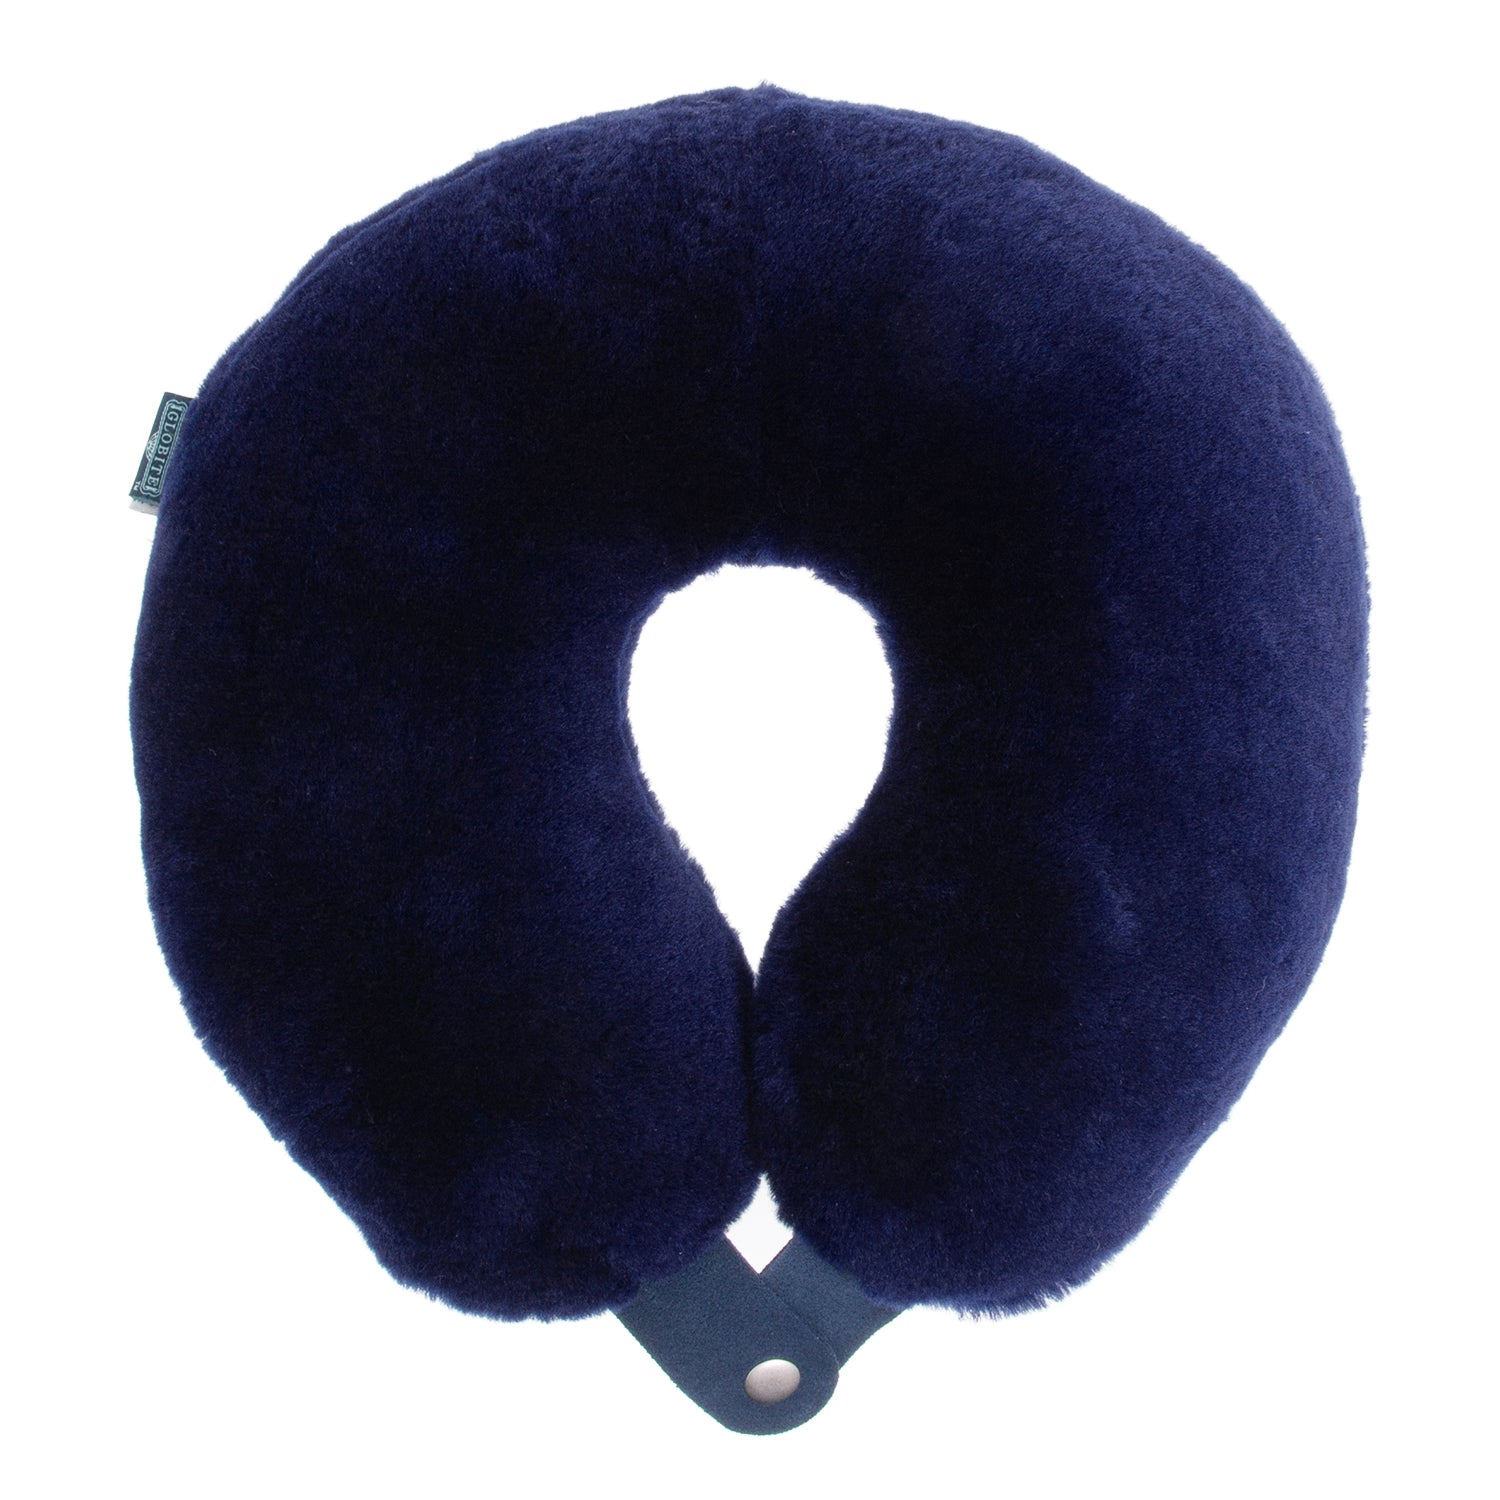 Australian Shearling Travel Neck Pillow - globitetravel